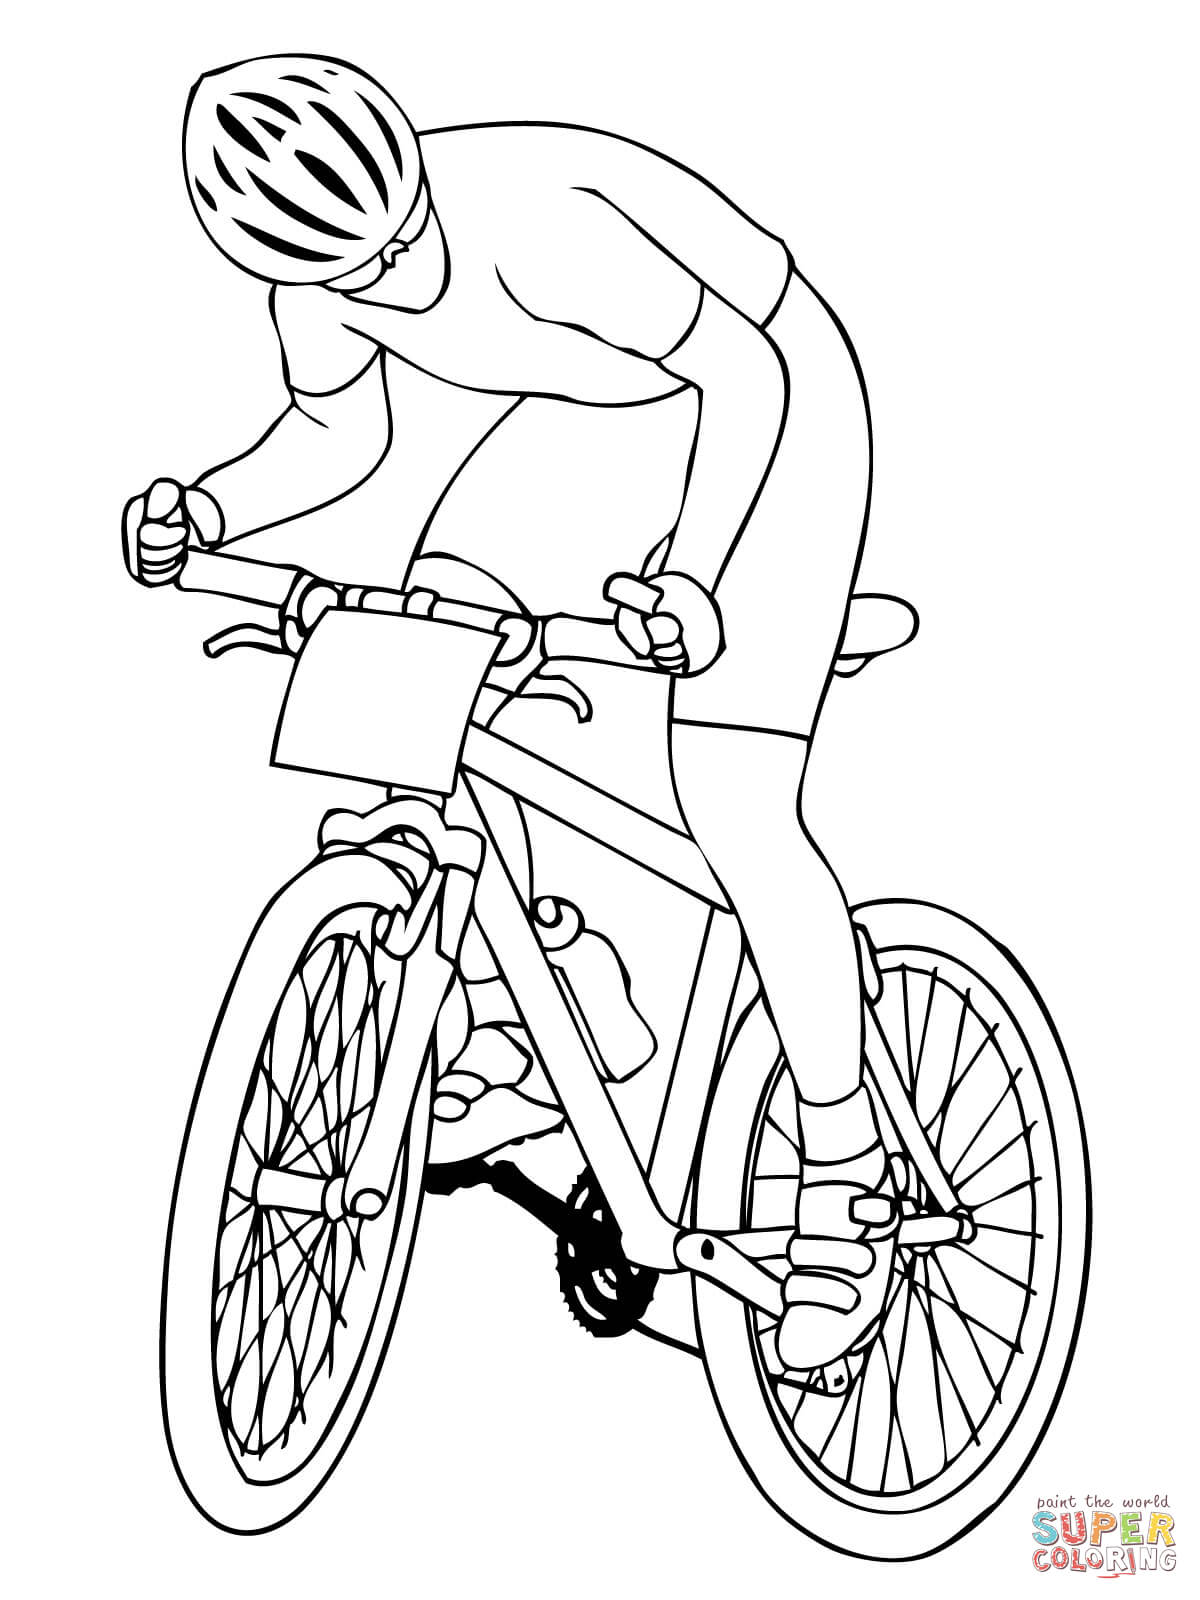 coloring sheet motorcycle coloring pages mountain bike coloring pages coloring home pages coloring motorcycle coloring sheet